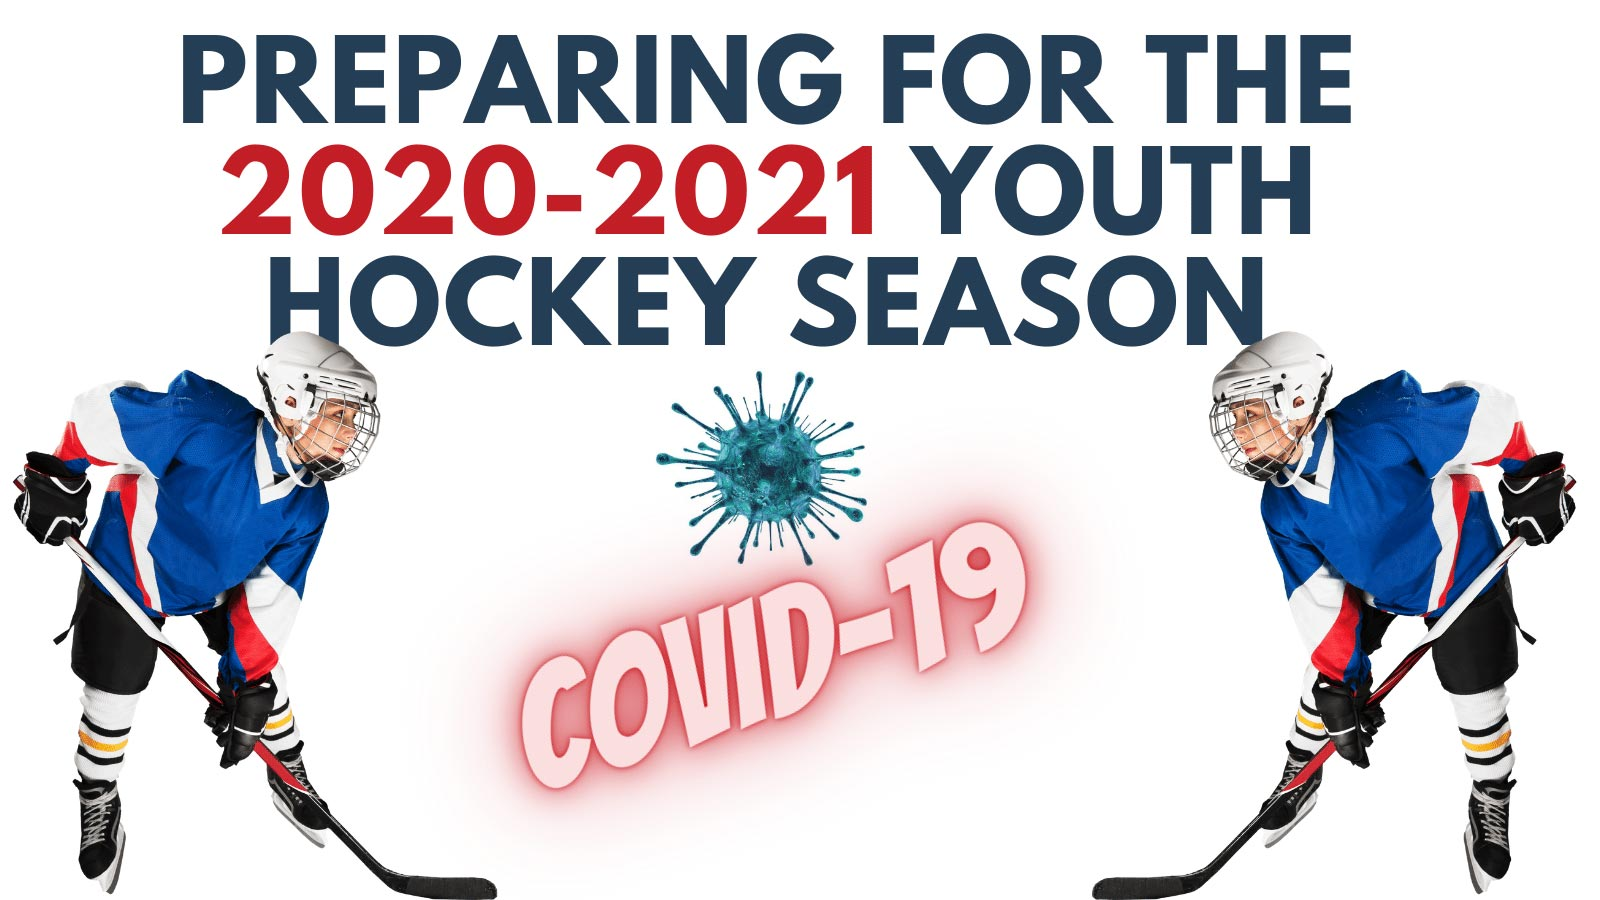 Preparing for the hockey season during the COVID-19 Pandemic